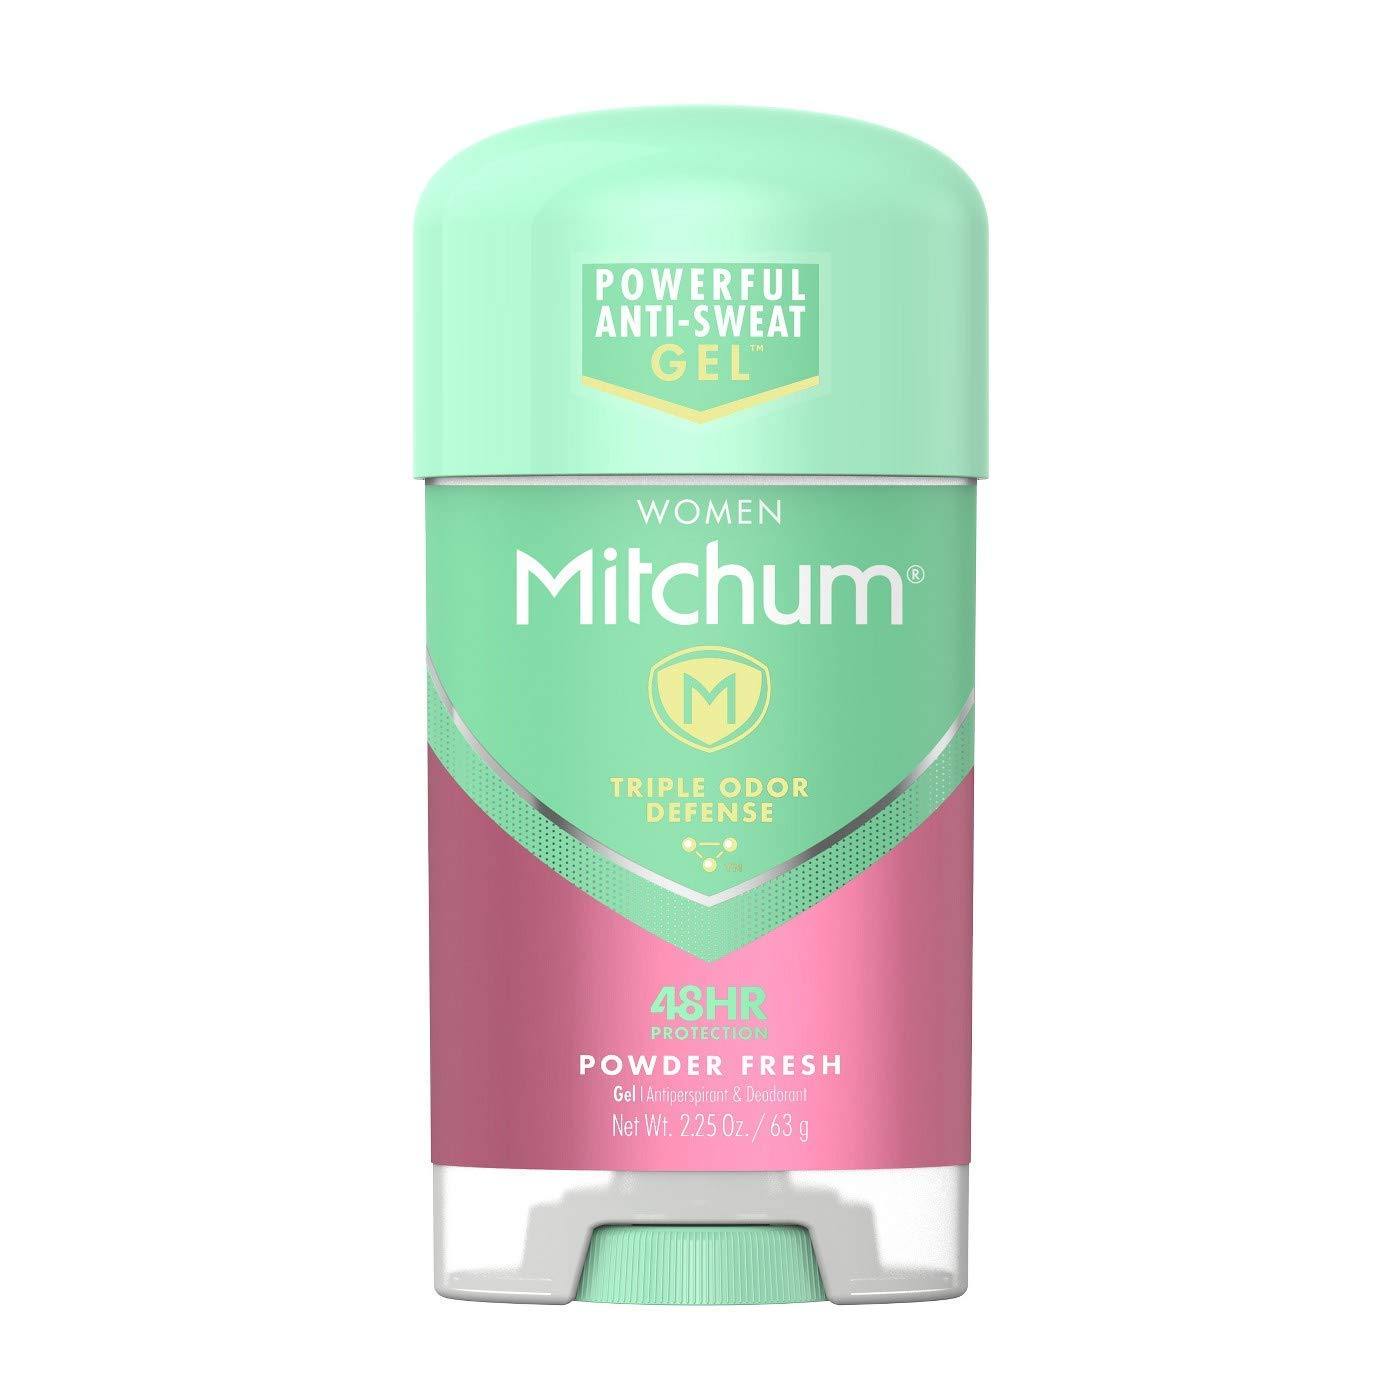 Lady Mitchum Oxygen Odor Control Antiperspirant & Deodorant, Powder Fresh 2.25 oz (Pack of 6) - Packaging May Vary